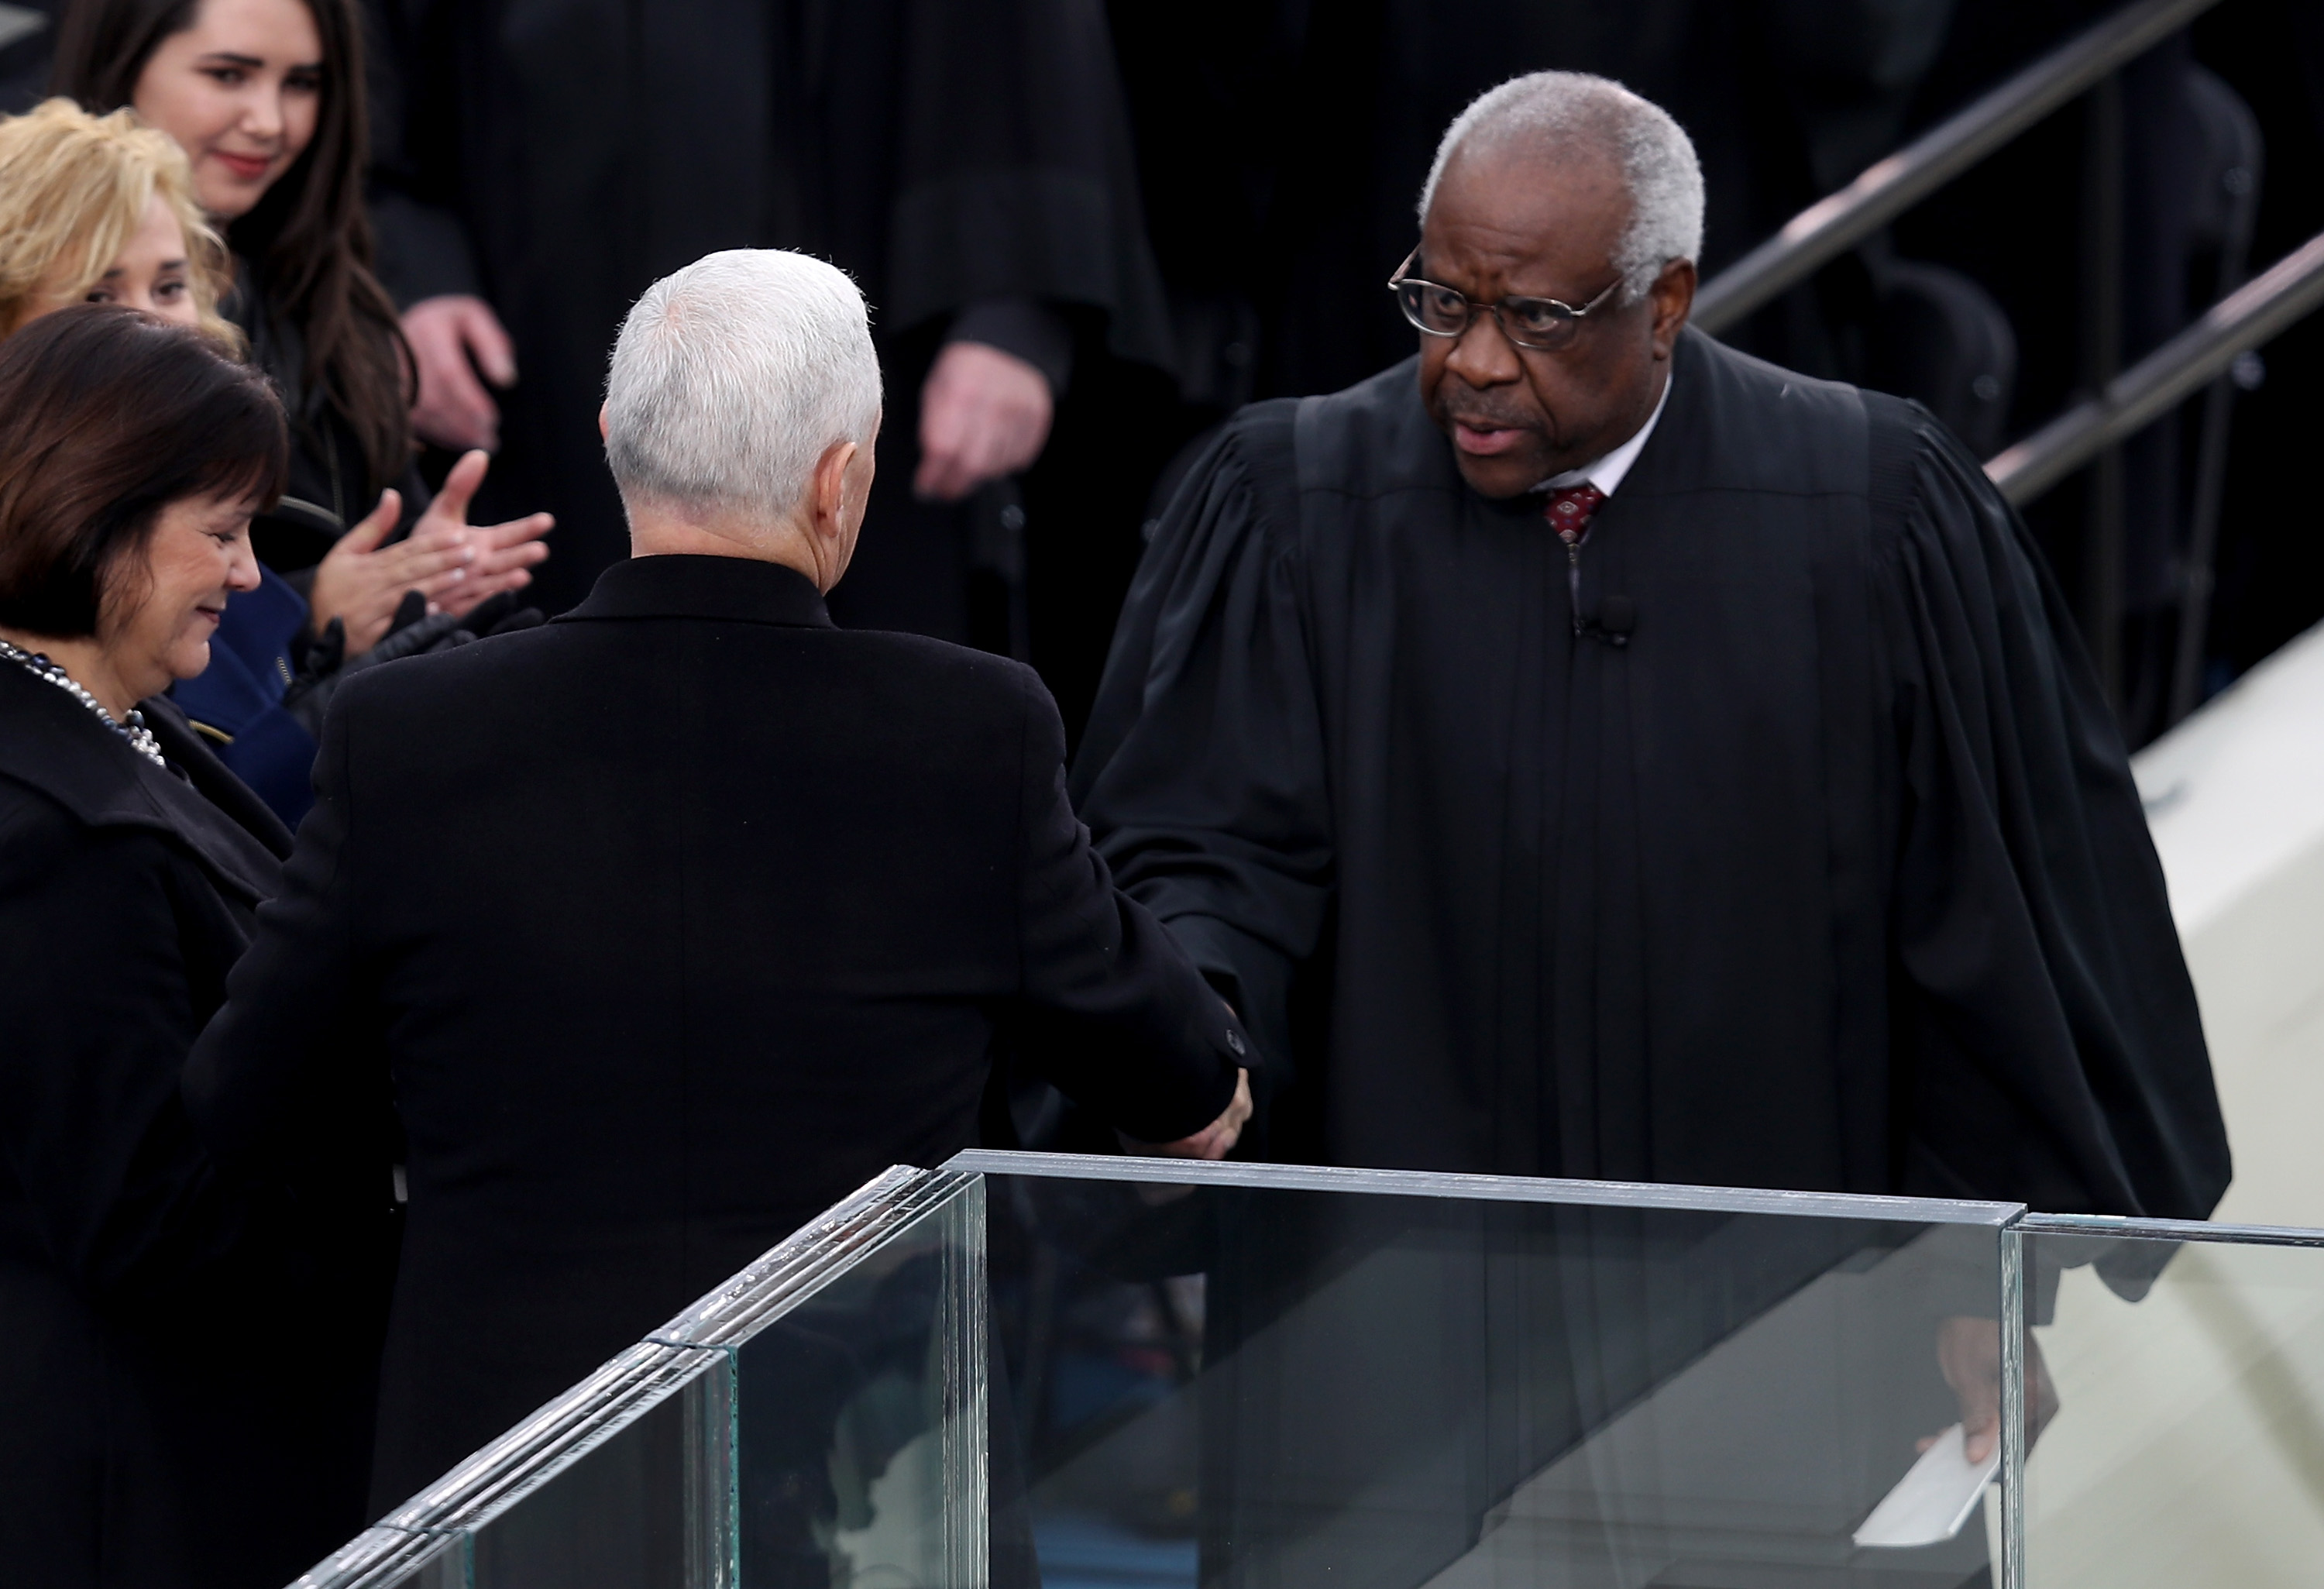 Vice President Mike Pence shakes hands with Justice Clarence Thomas on January 20, 2017. (Joe Raedle/Getty Images)